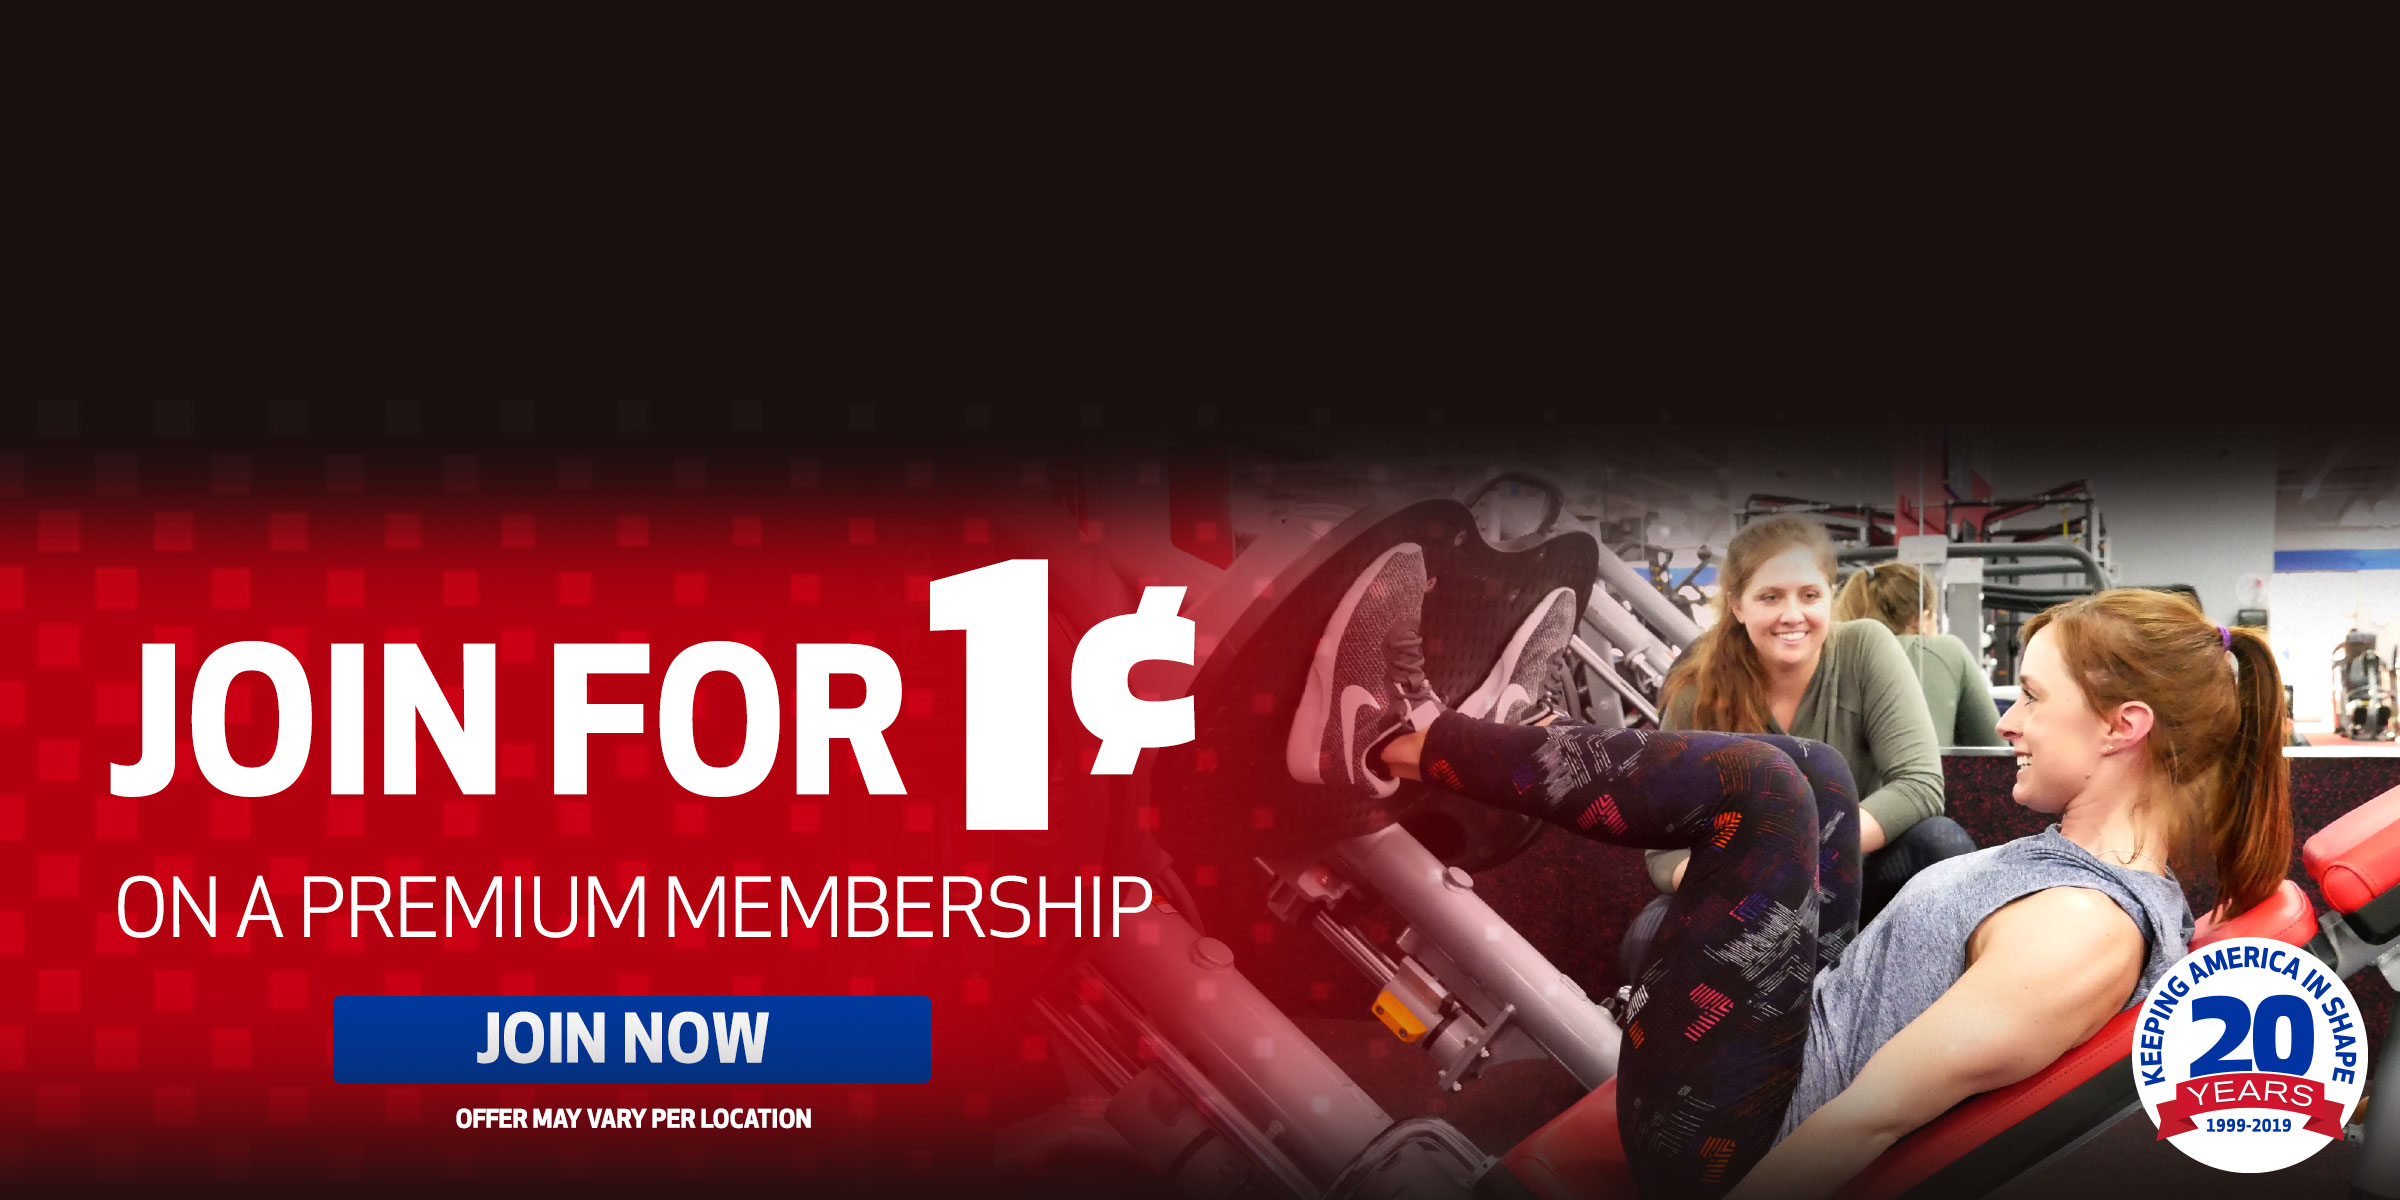 Join for 1¢ on a Premium Membership